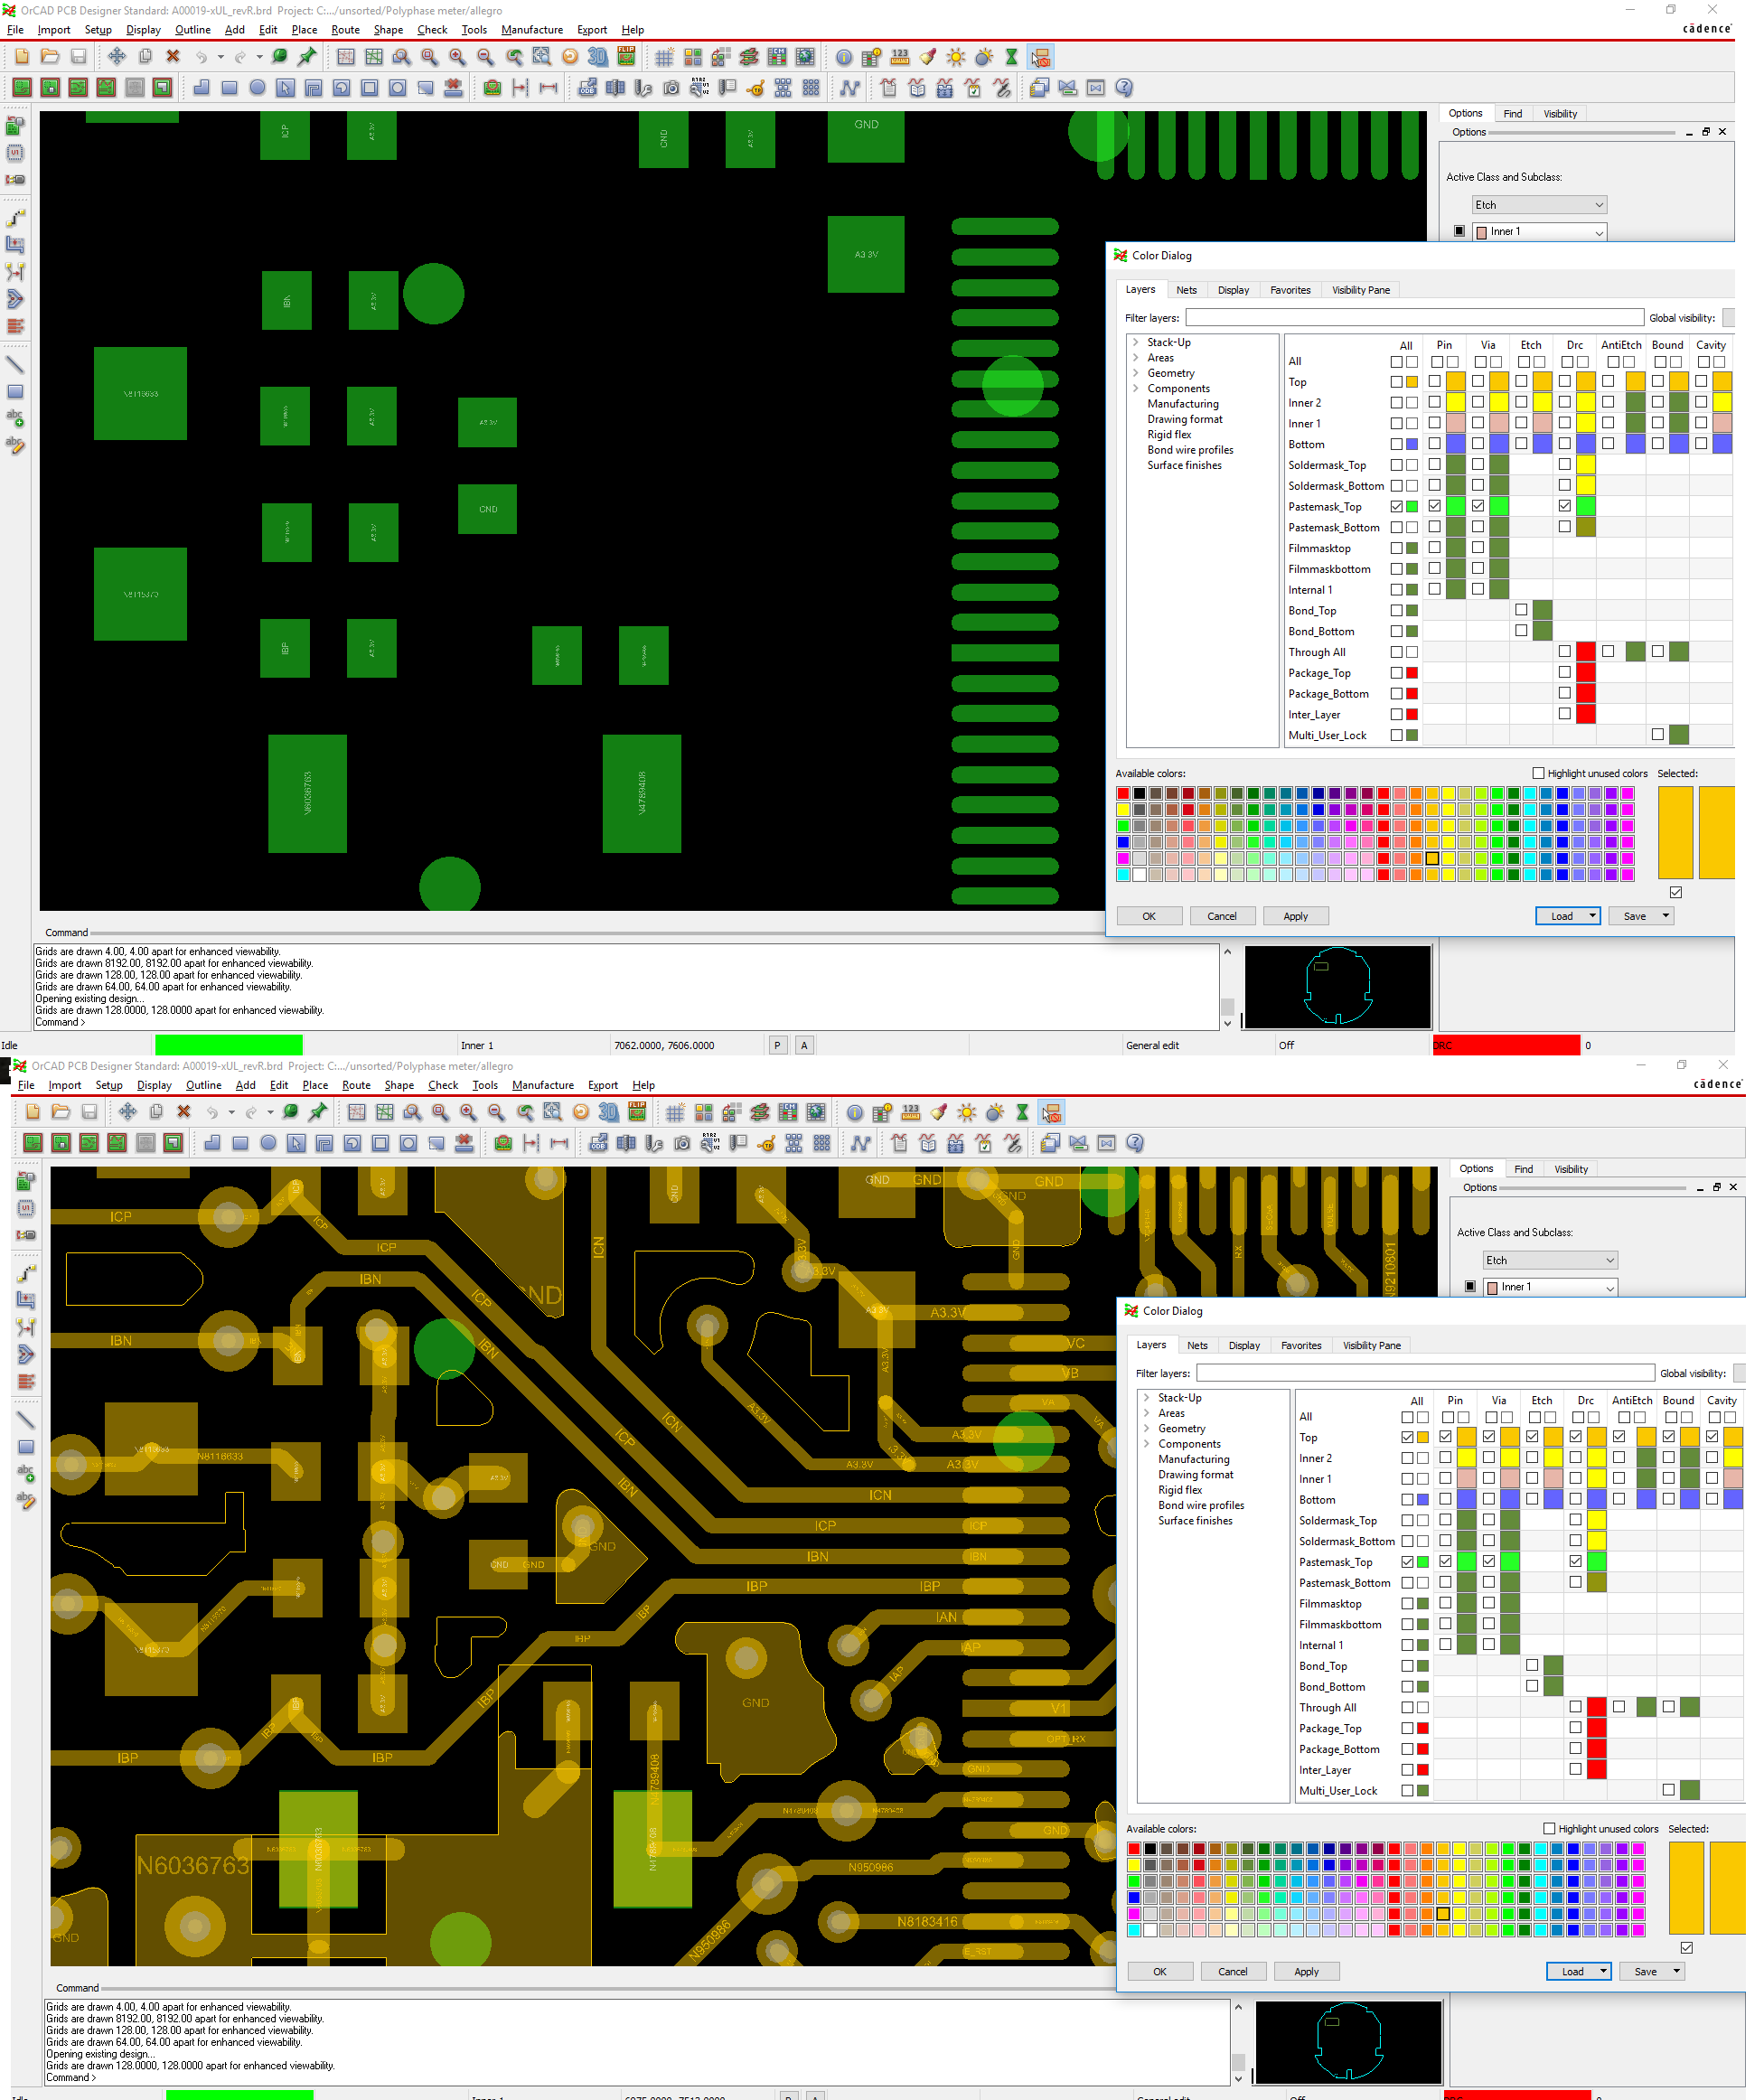 PCB Editor layer transparency not working right - PCB Design ...